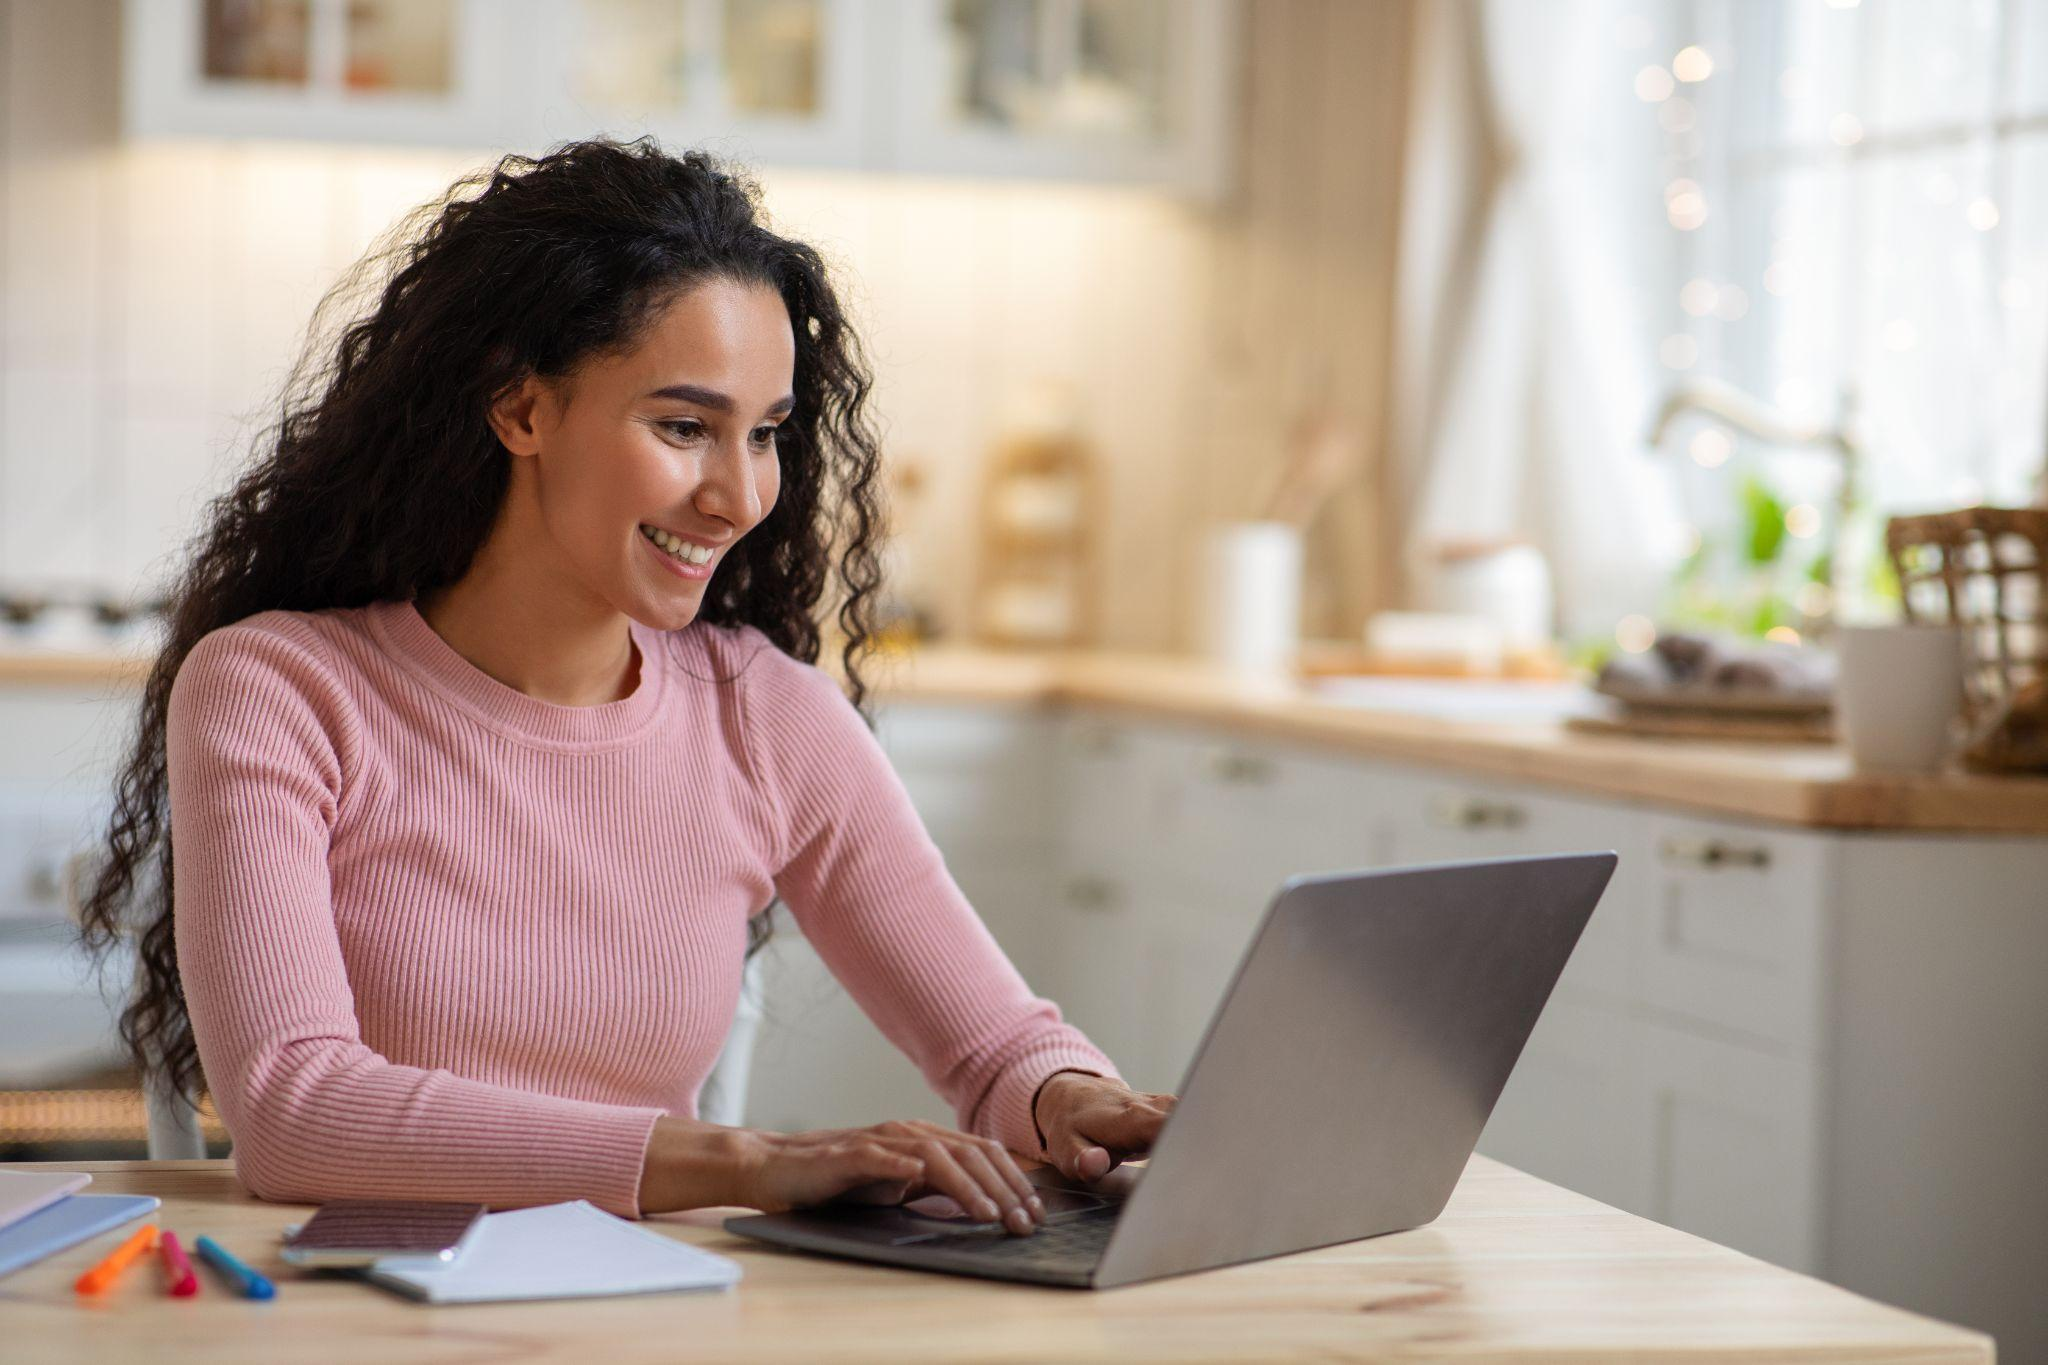 Women typing on a laptop at her kitchen table